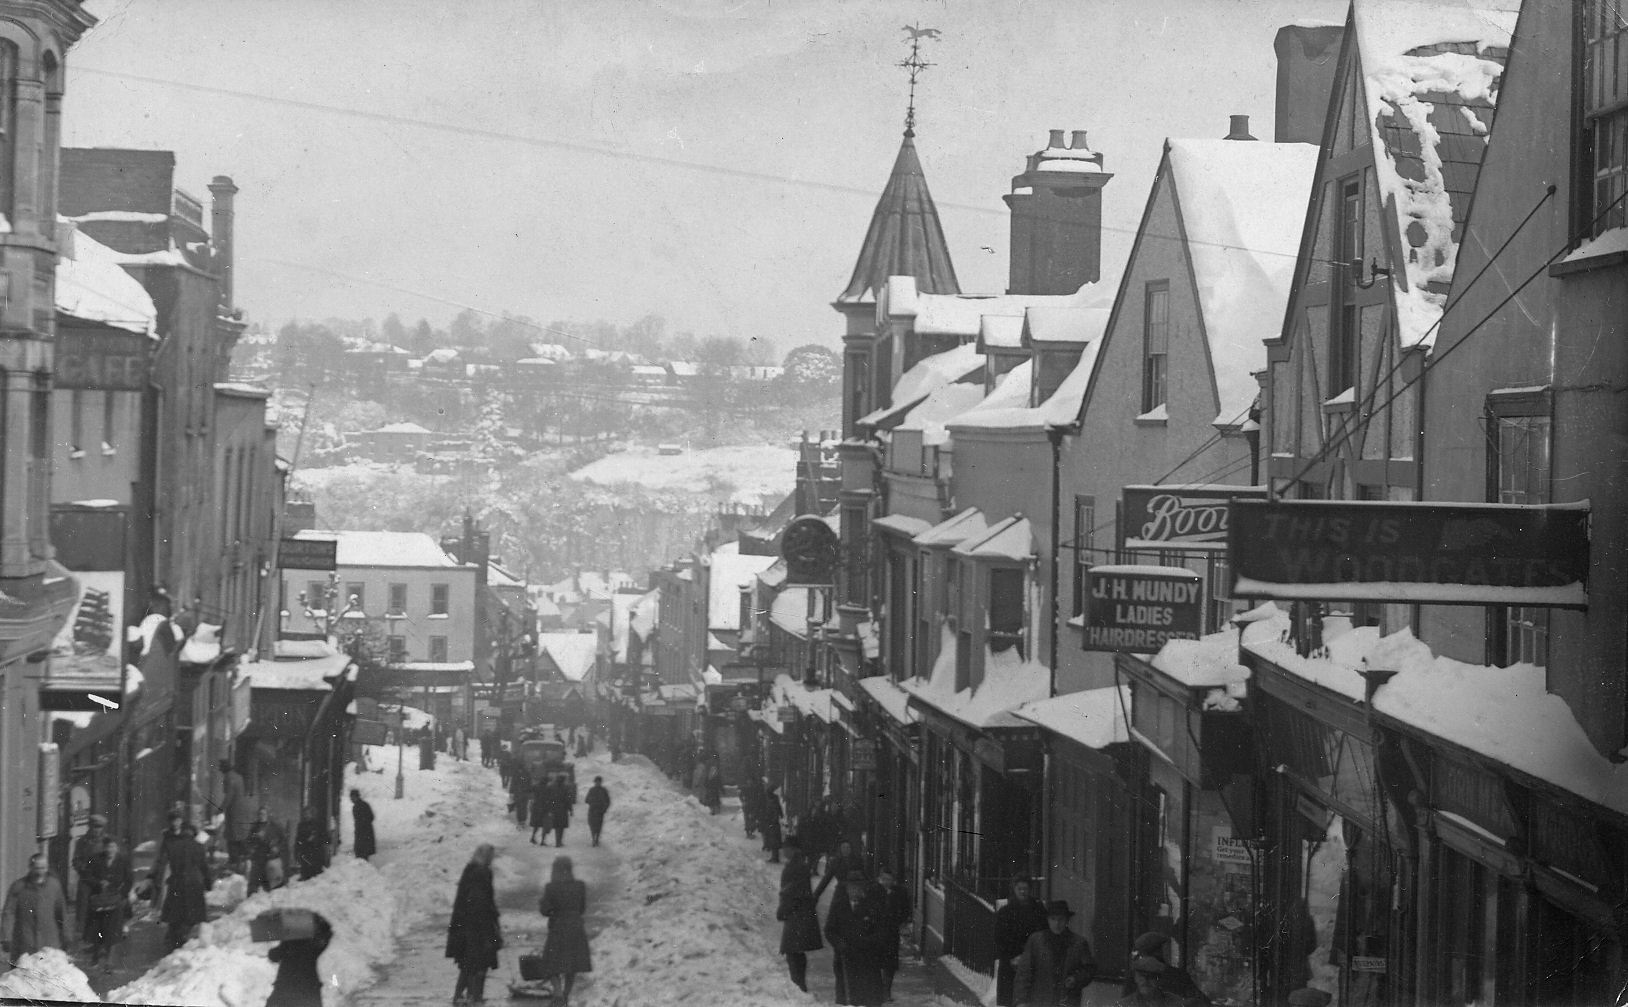 Chepstow High Street and beyond, deep in snow, 1947. Photograph from the collections of Chepstow Museum ©Monmouthshire Museums